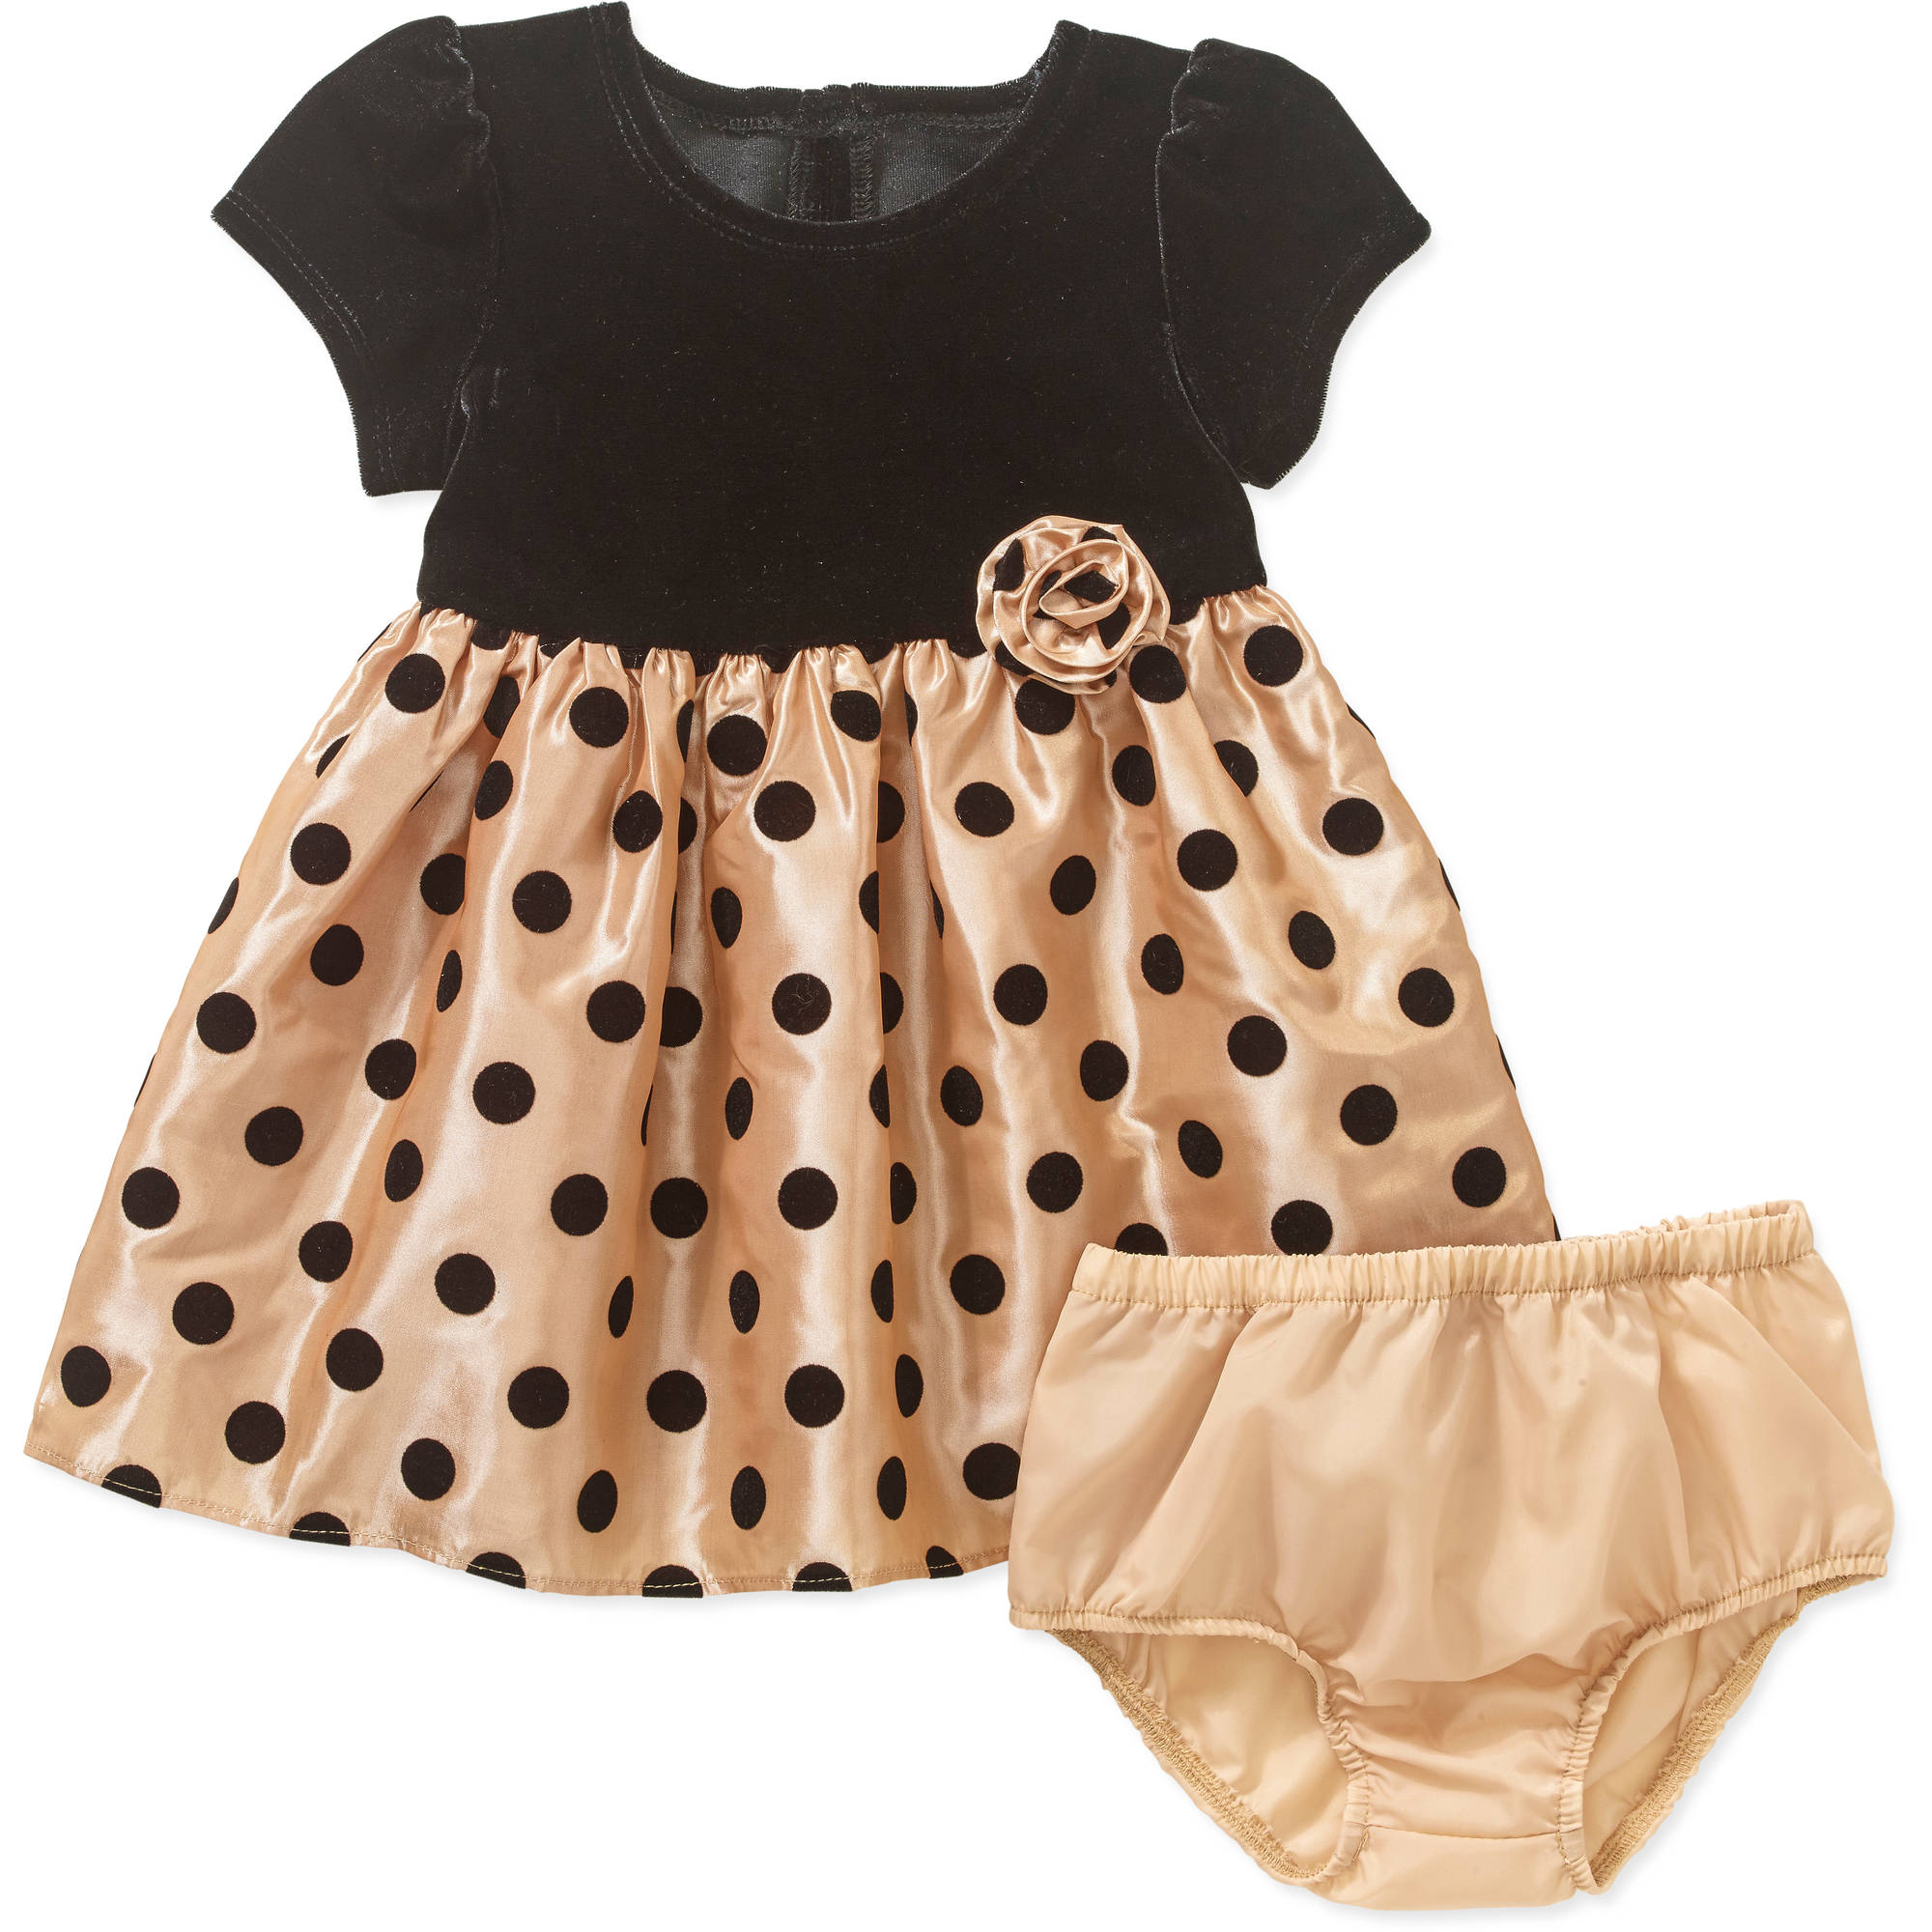 George Newborn Baby Girls' Polka Dot Flocked Holiday or Special Occasion Dress